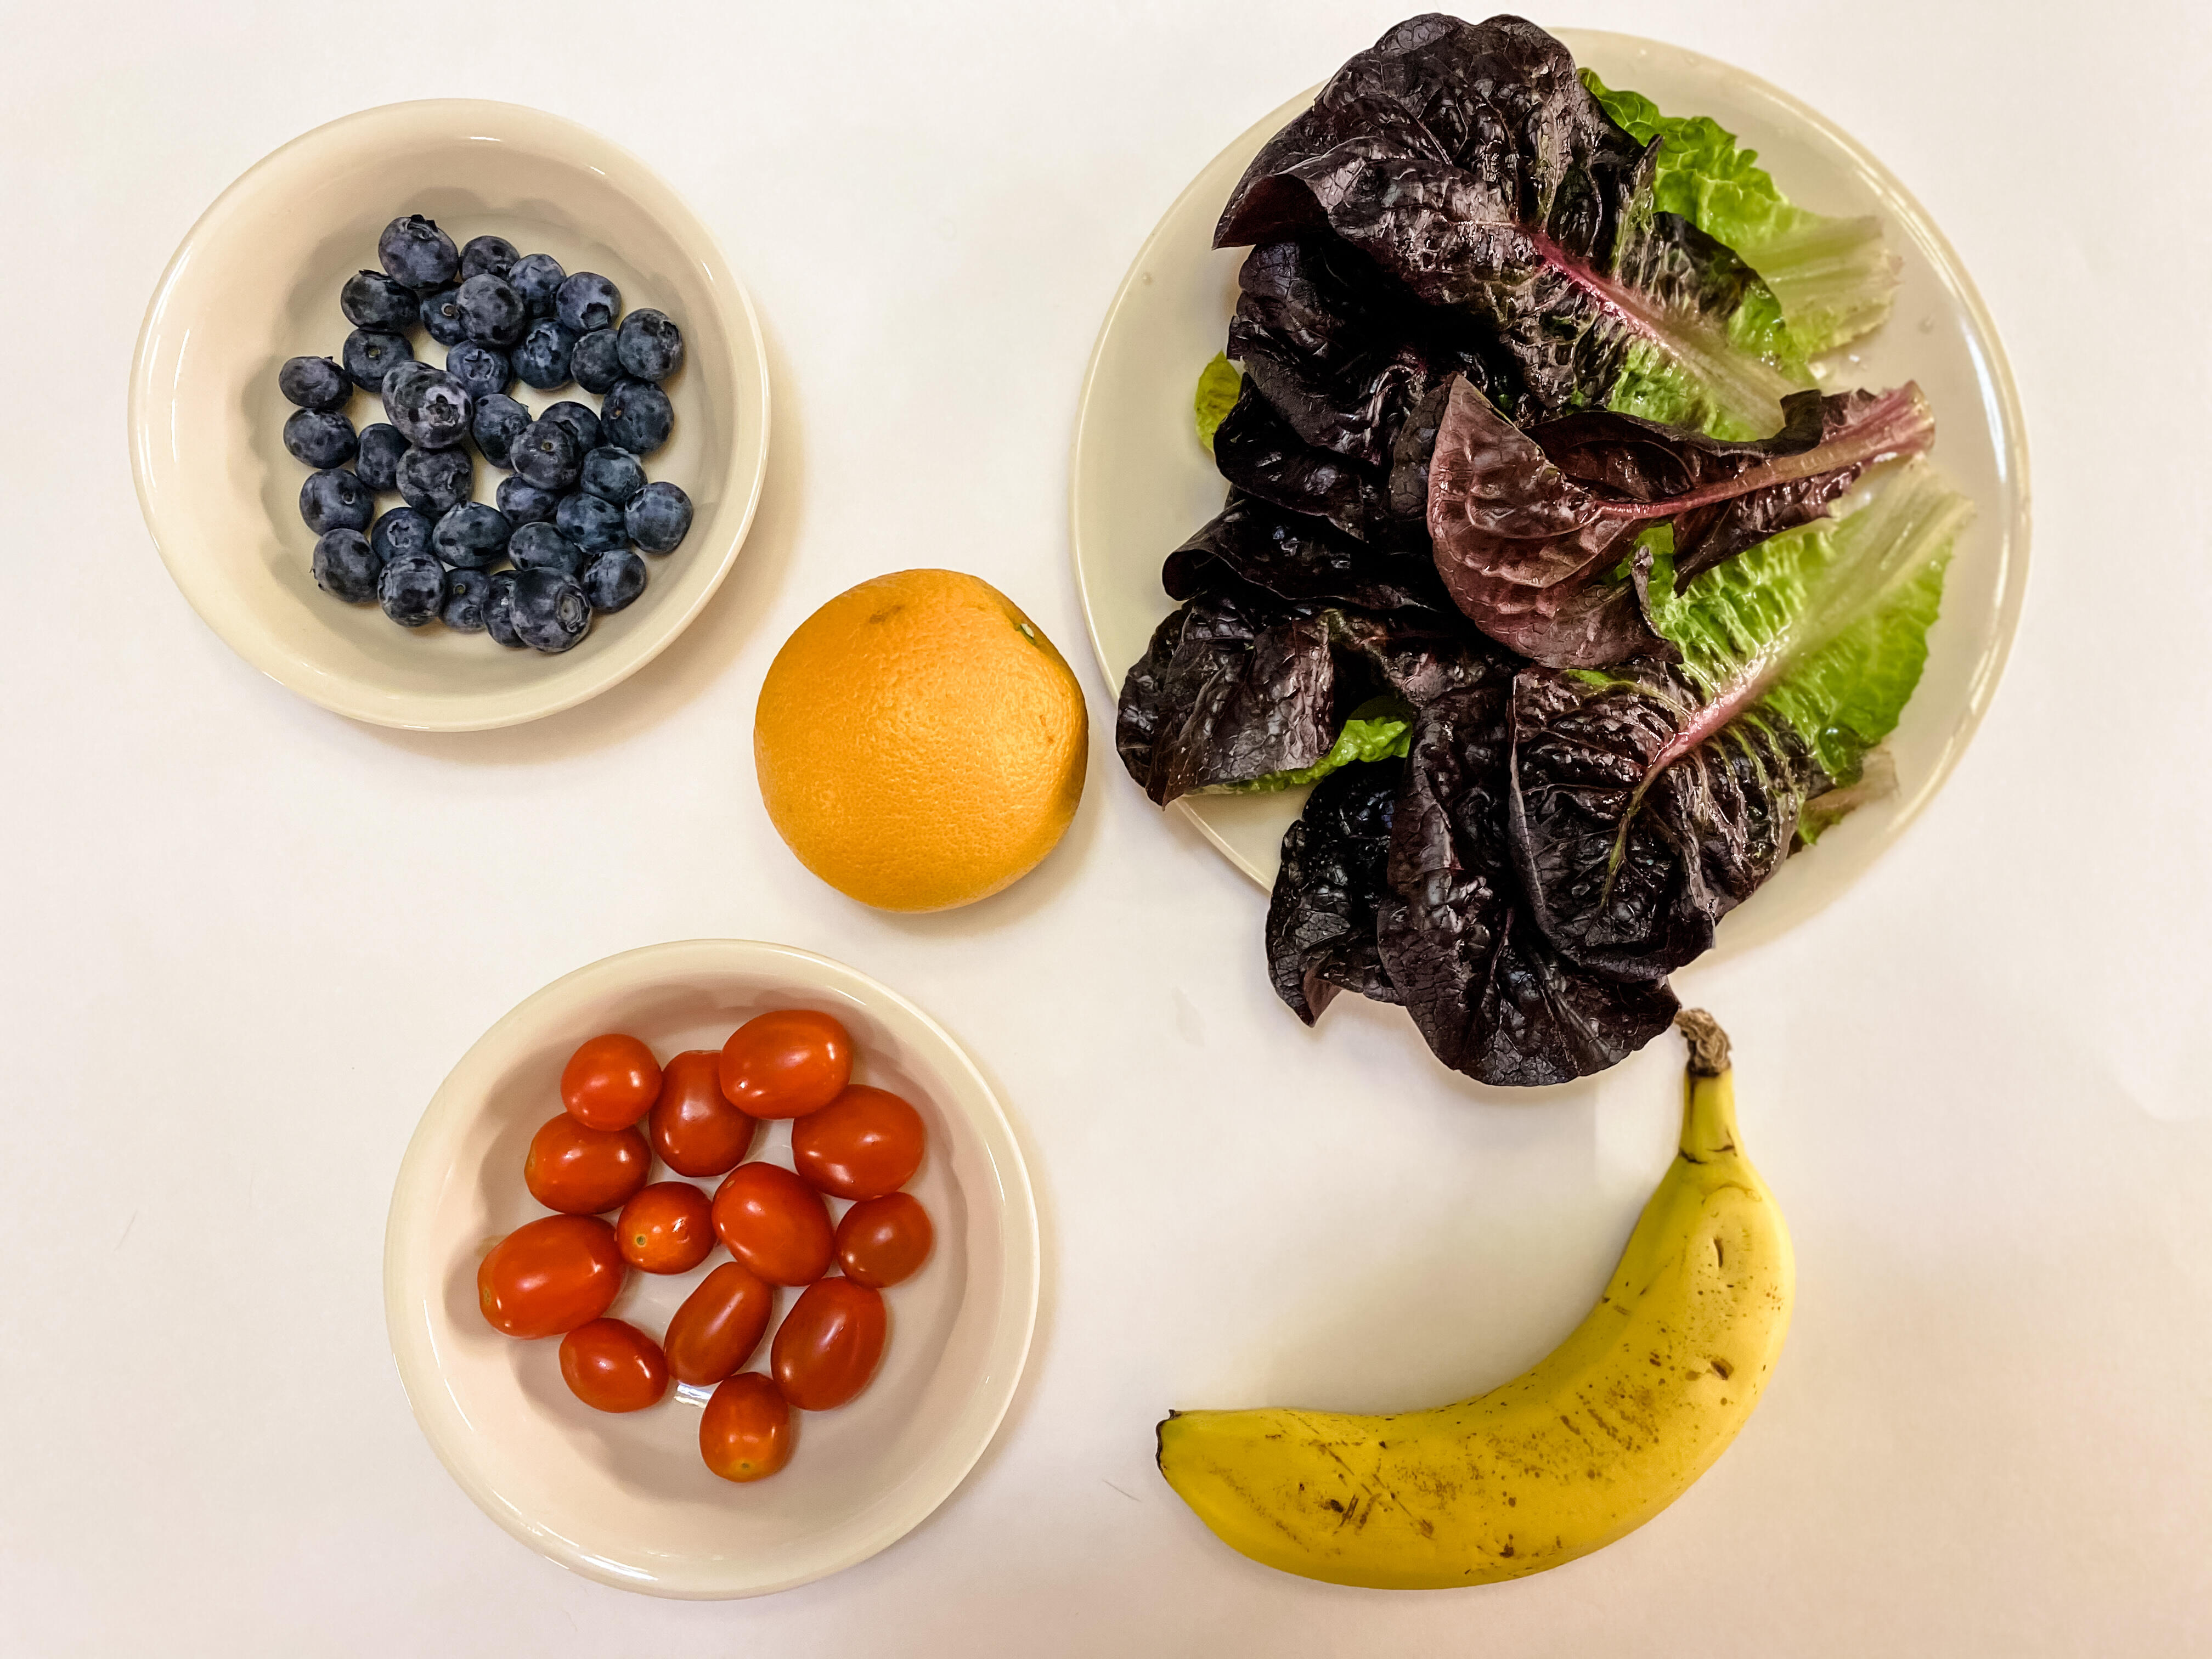 Five servings of produce: one cup of lettuce, one medium banana, one orange, a half cup of cherry tomatoes, and a half cup of blueberries